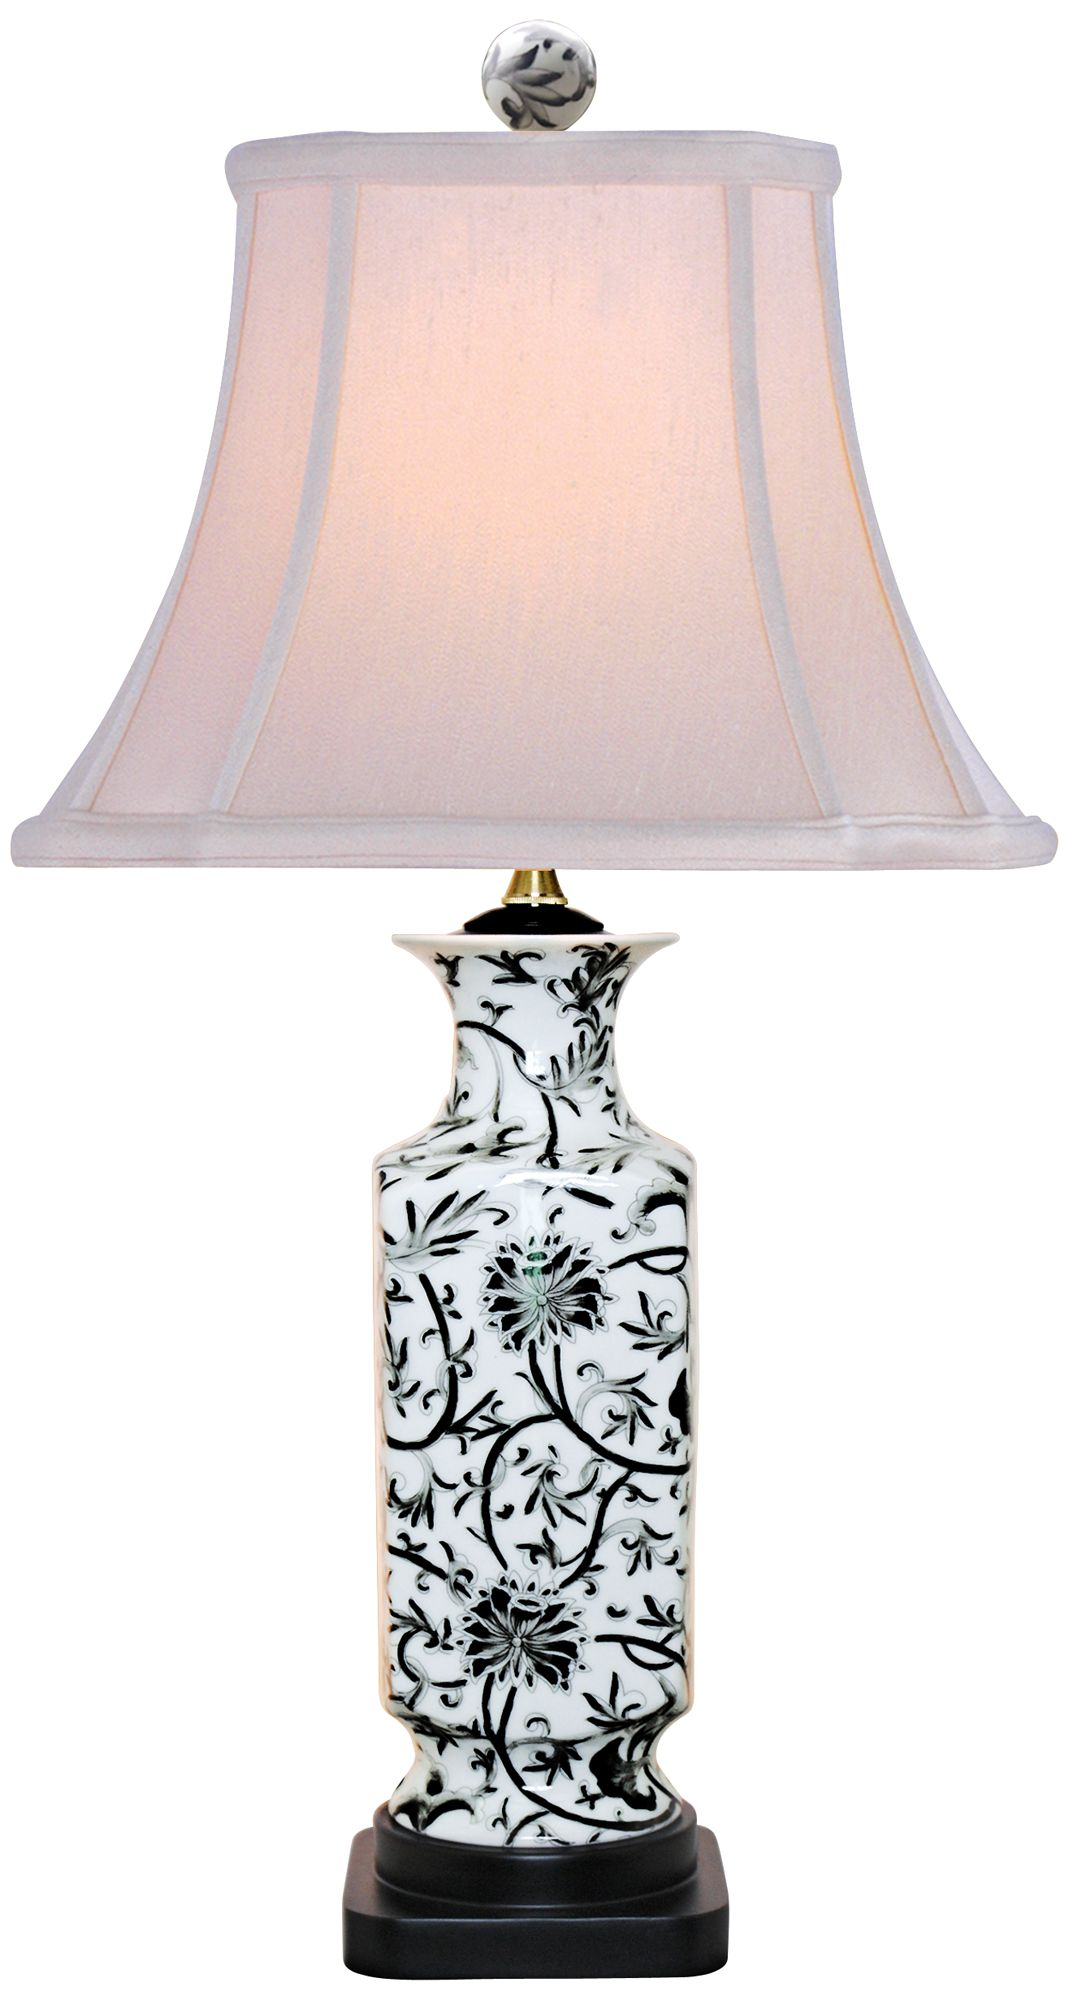 Black And White Floral Vase Table Lamp